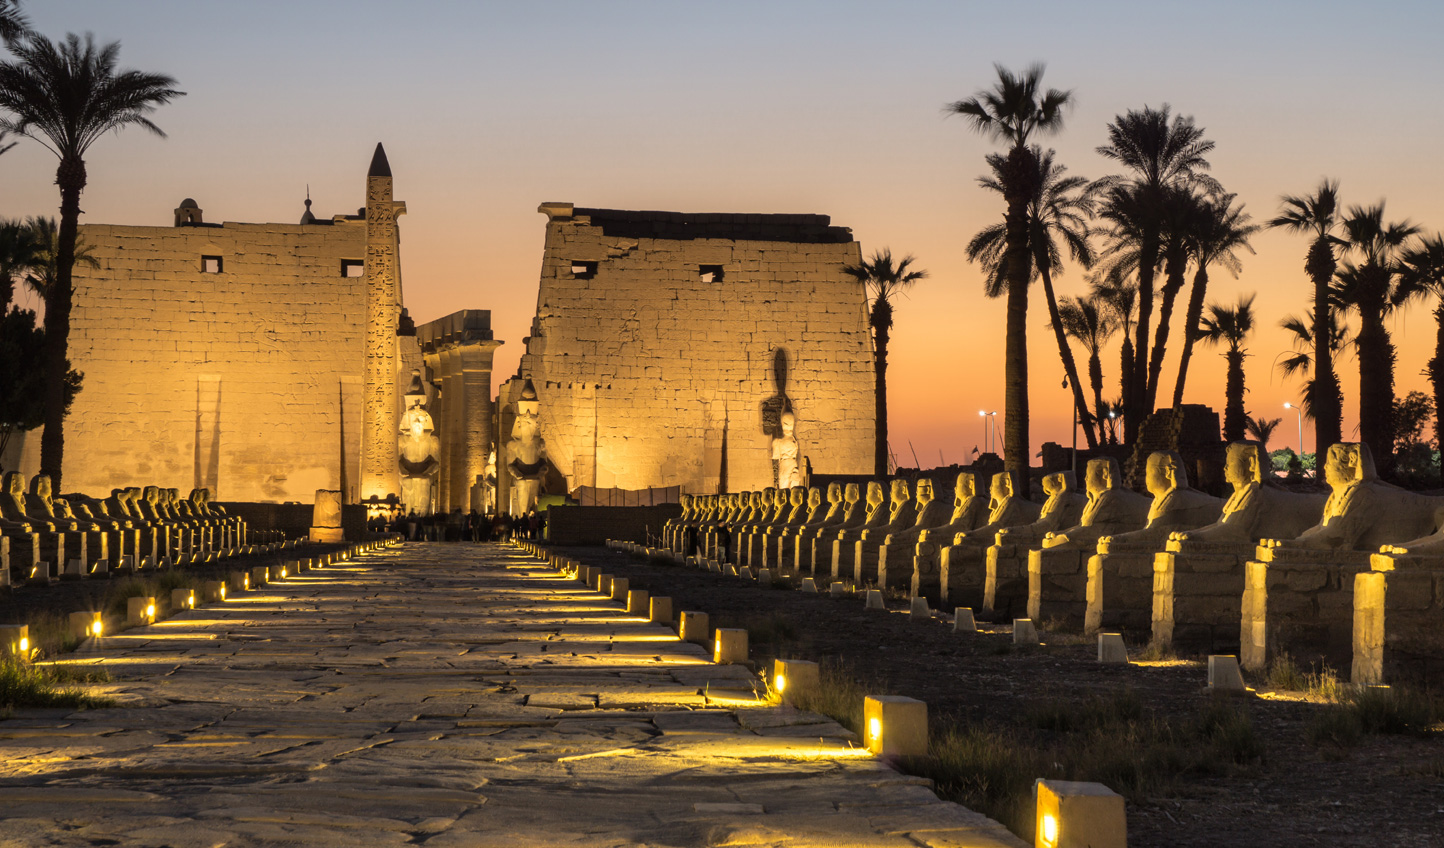 Visit Luxor Temple at night as it lights up to bring an ethereal glow to the desert